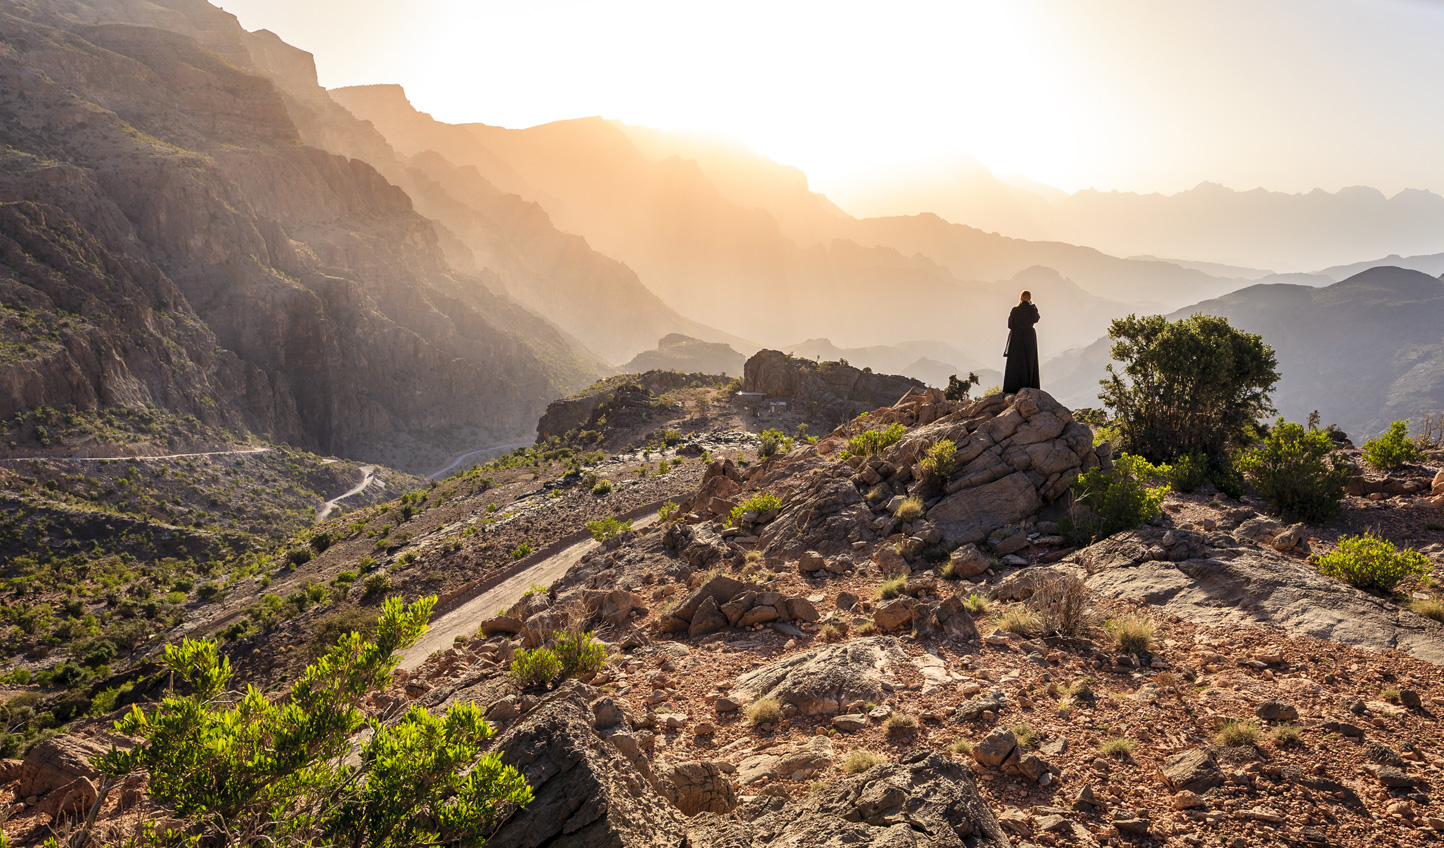 Hike through the Al Hajar Mountains, learning about local life on the way